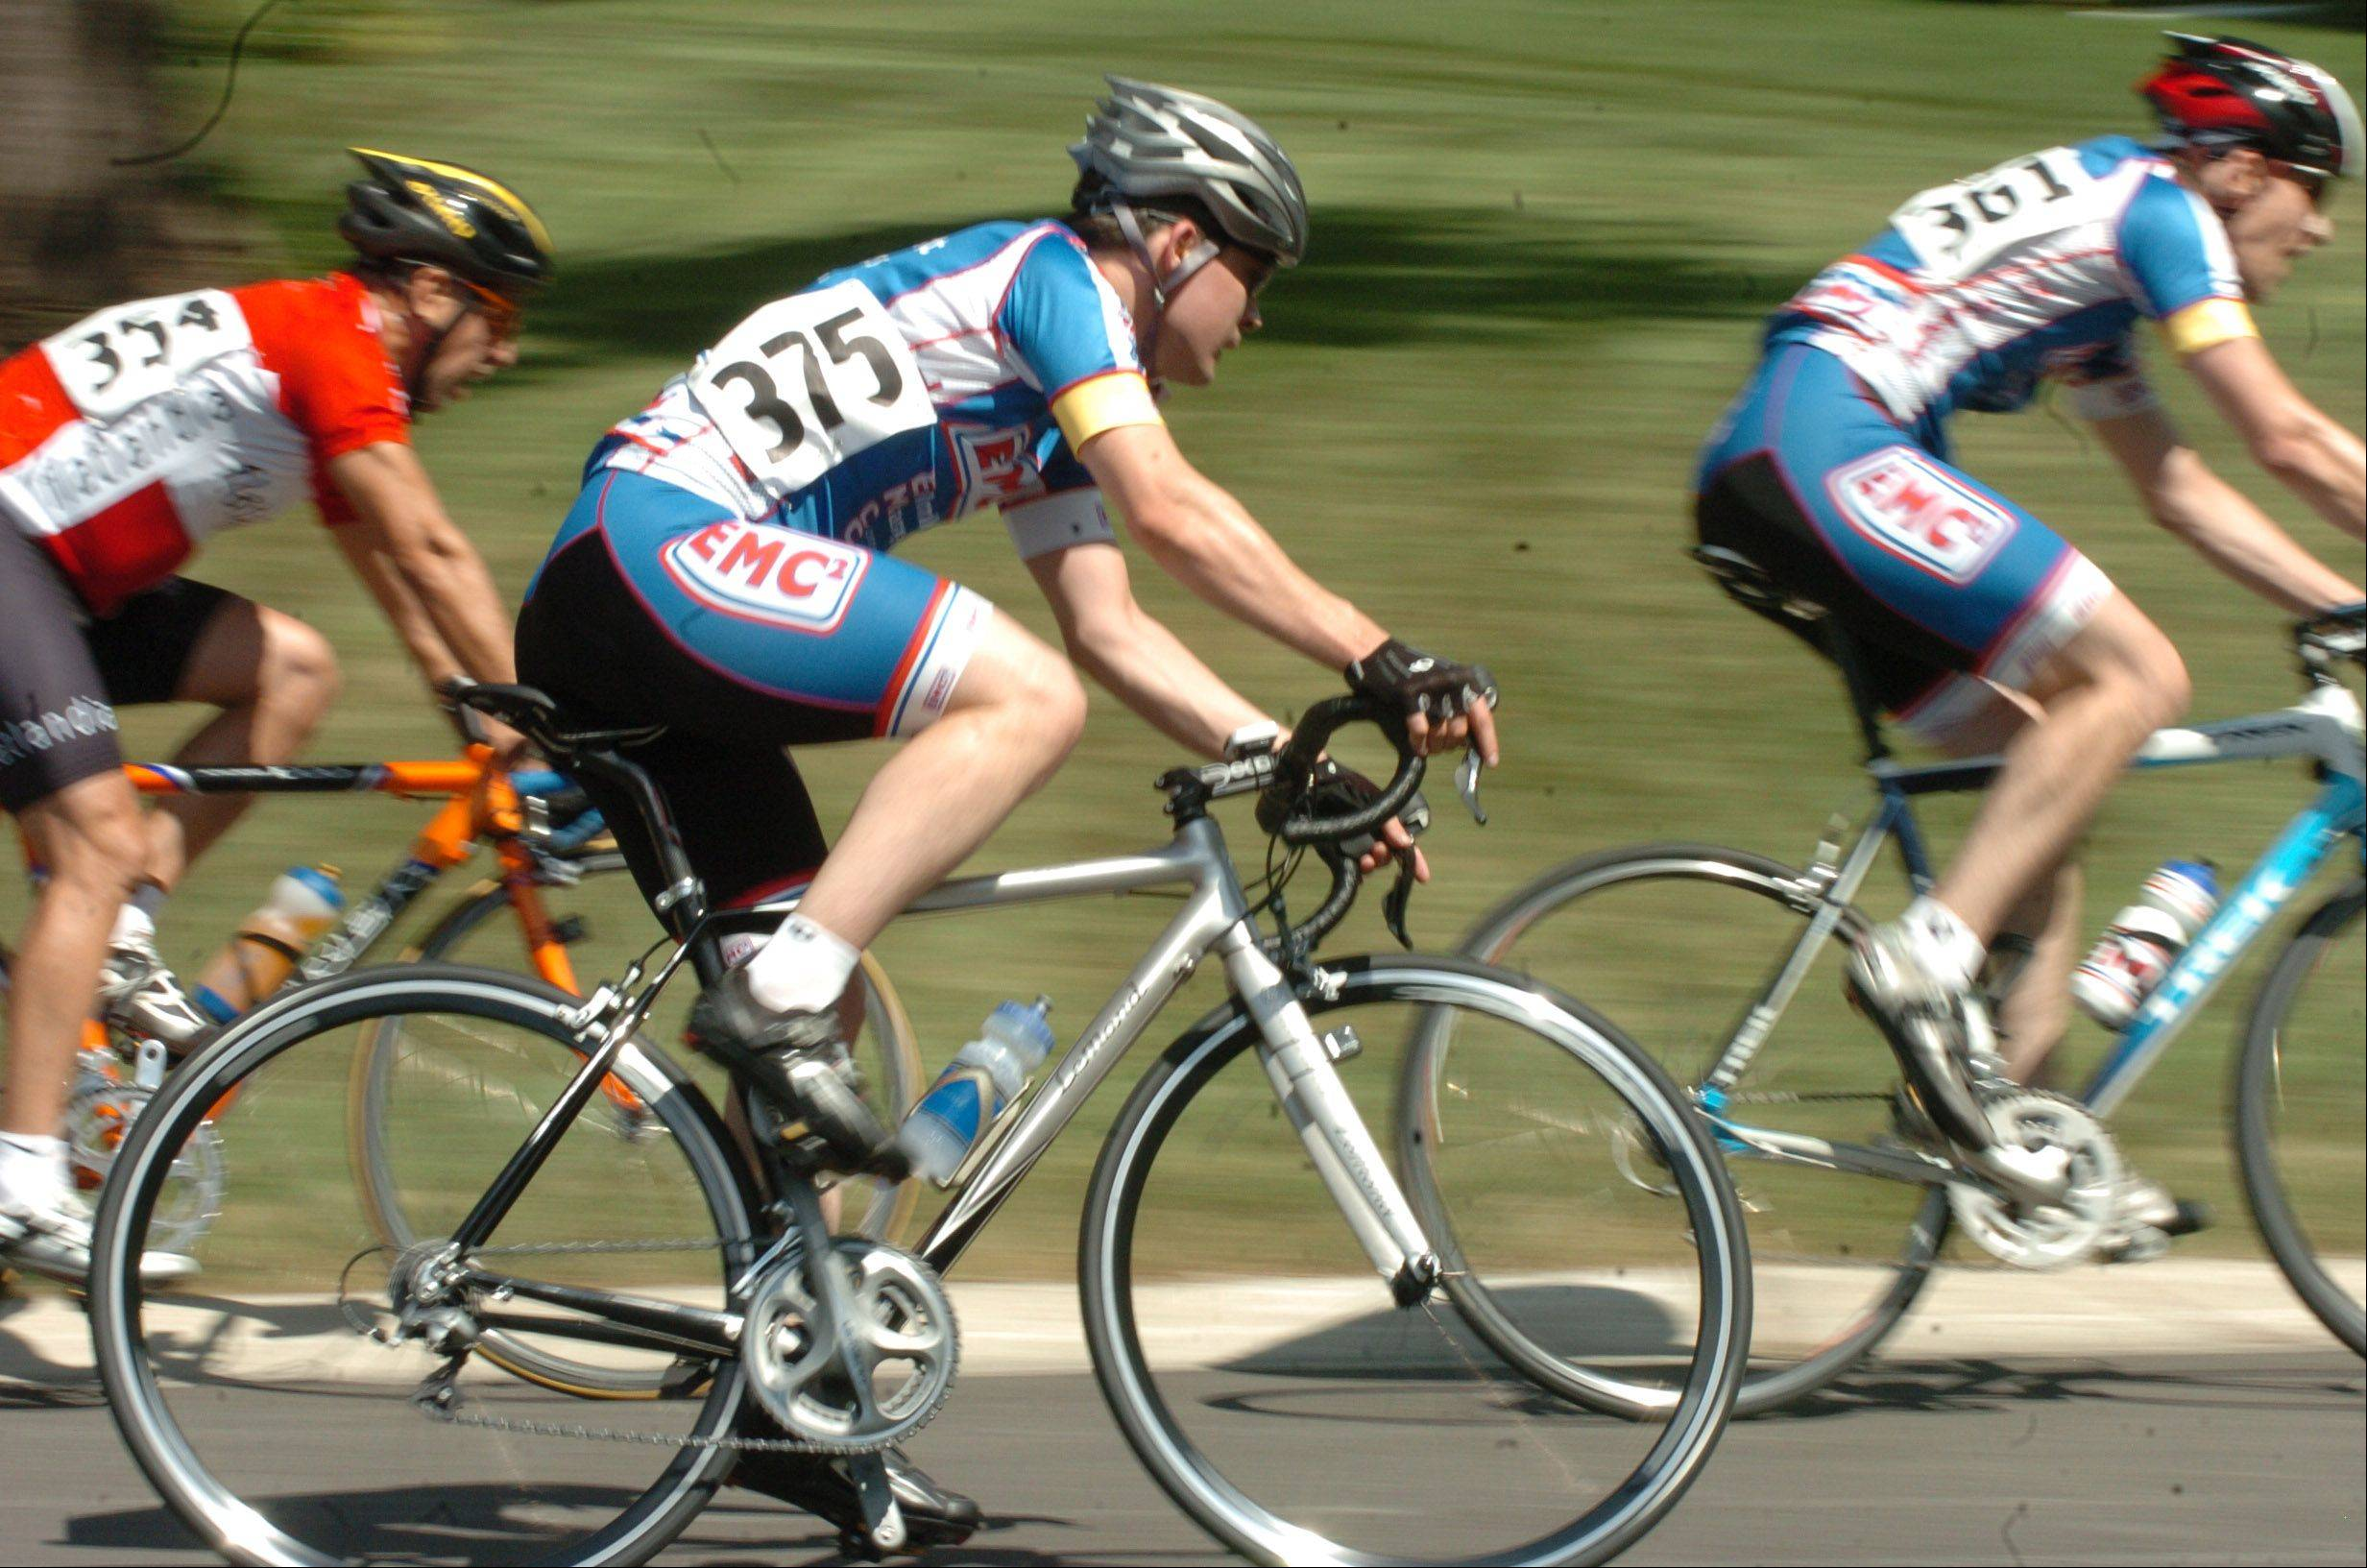 This weekend�s Winfield Criterium is expected to draw more than 400 cyclists to the village.